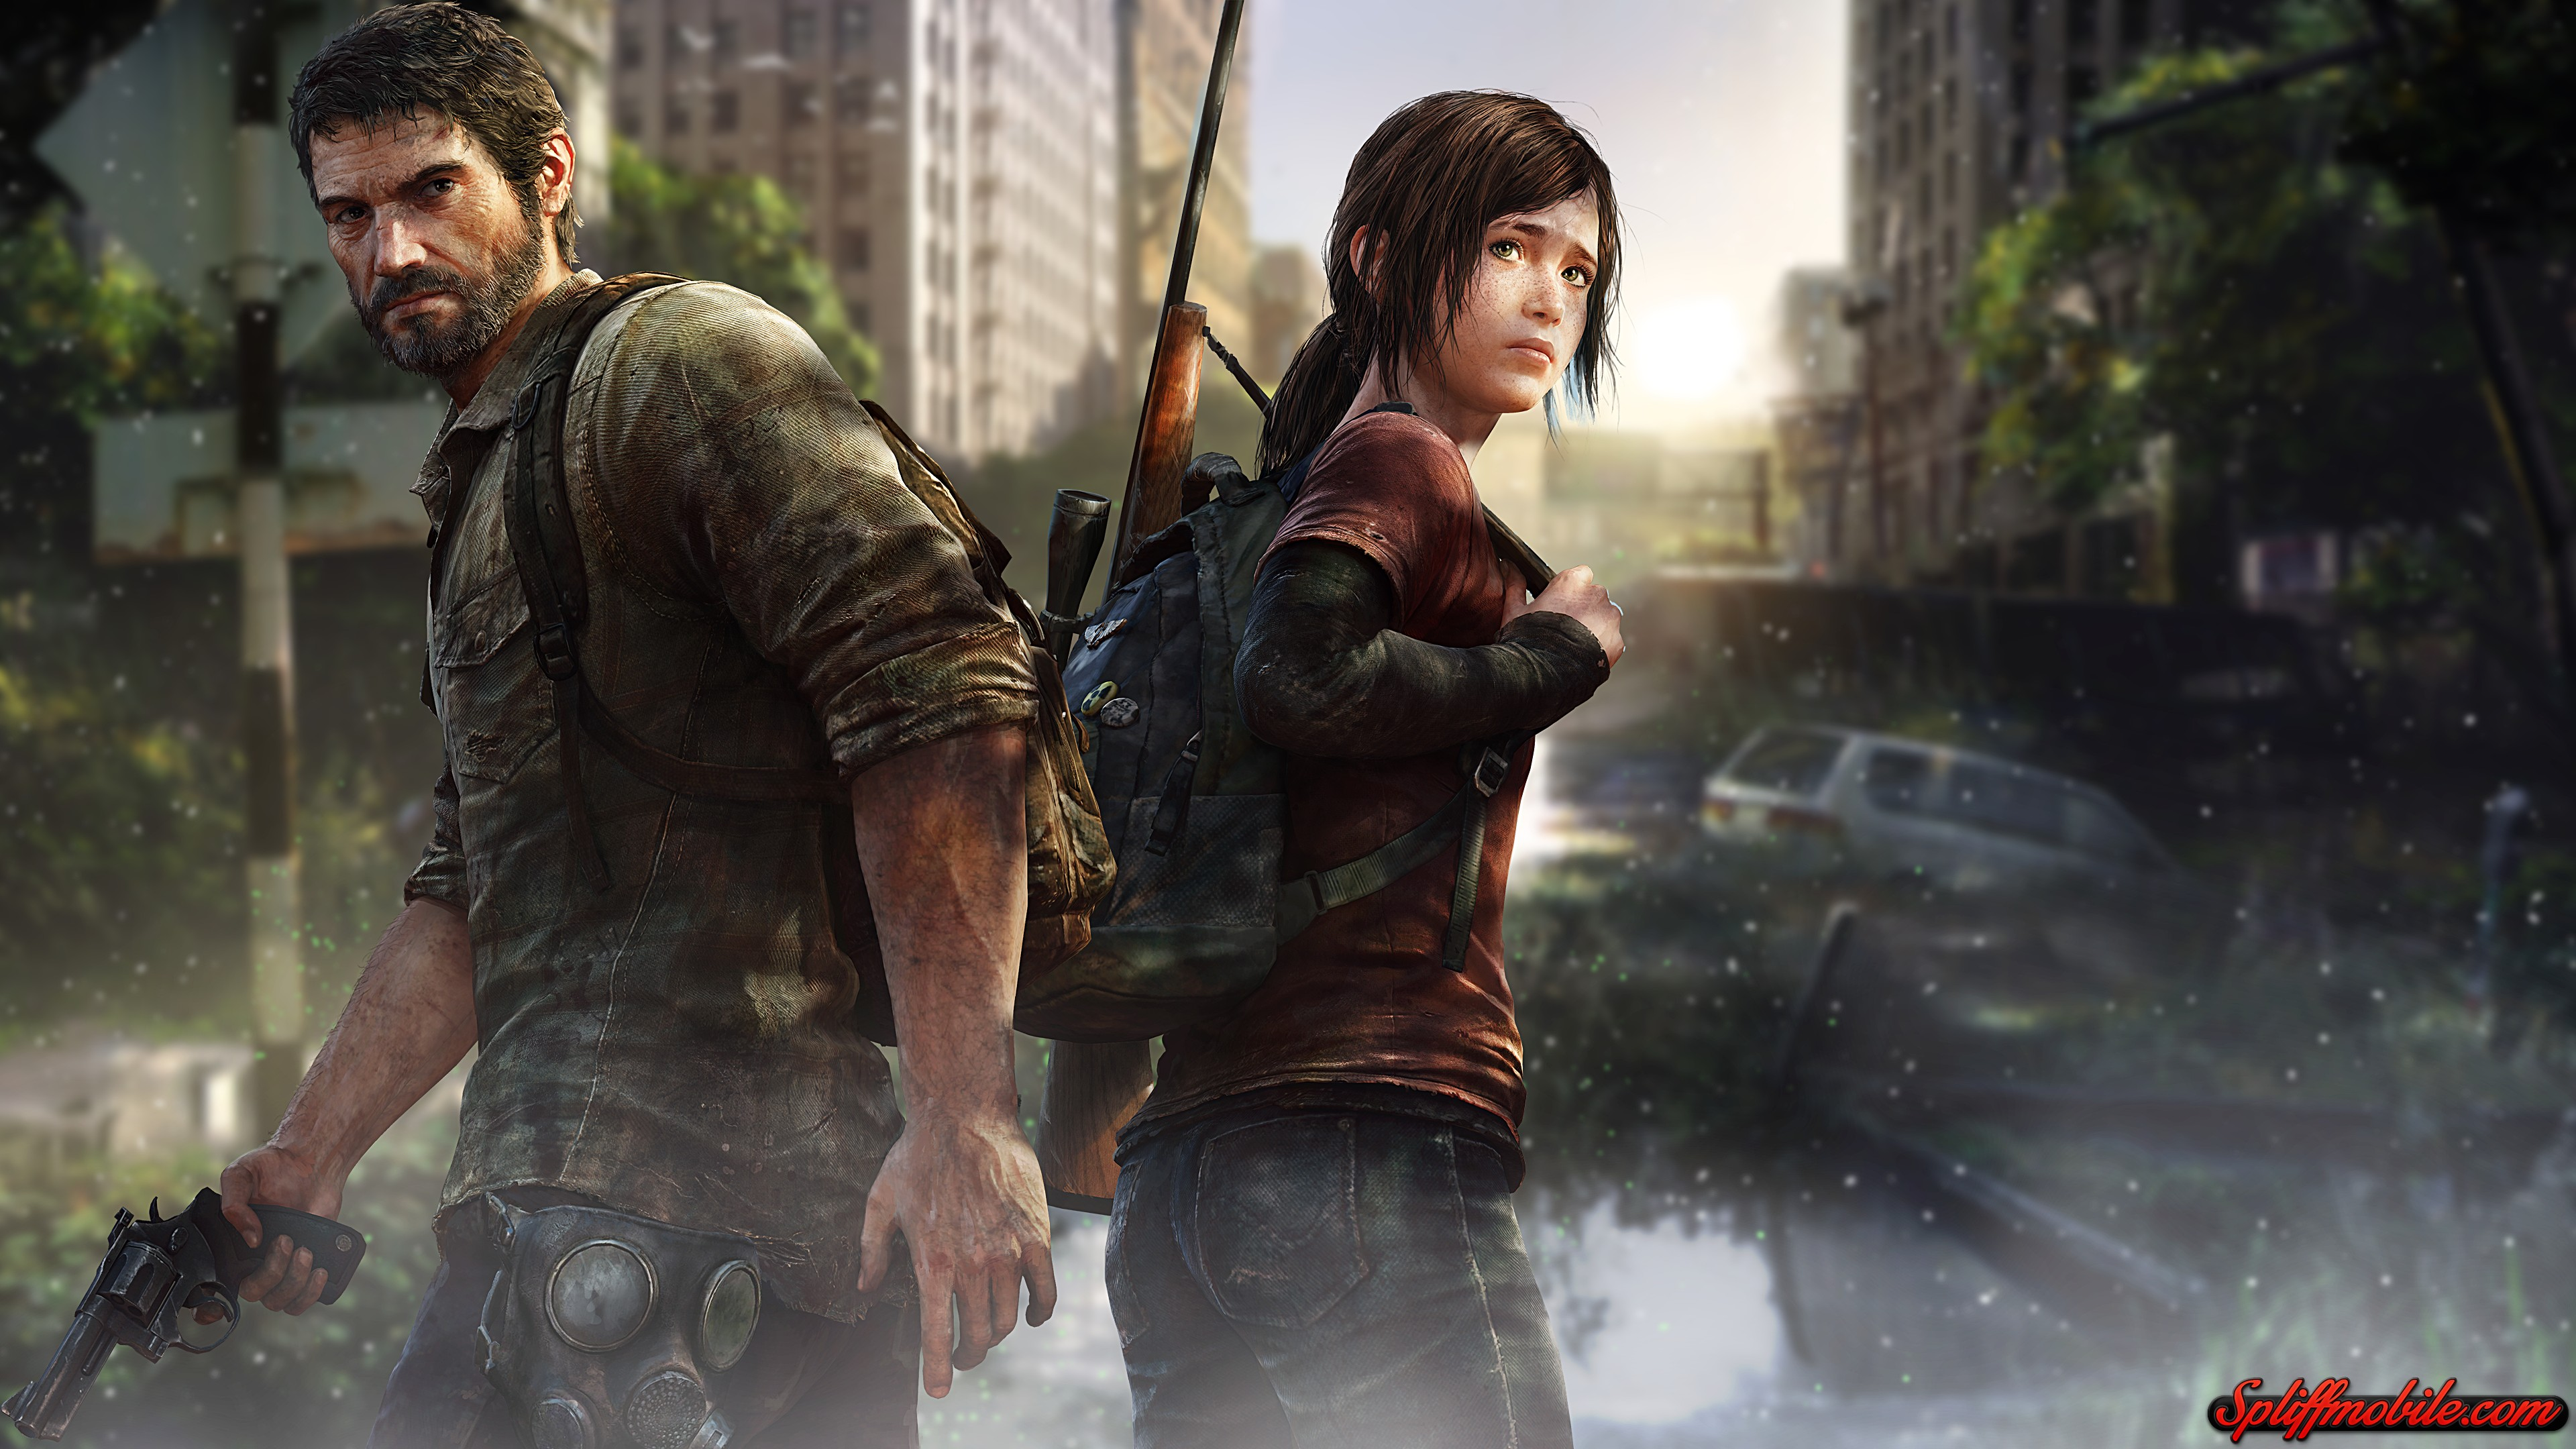 the last of us iphone wallpaper the last of us wallpaper 183 free cool hd 19472